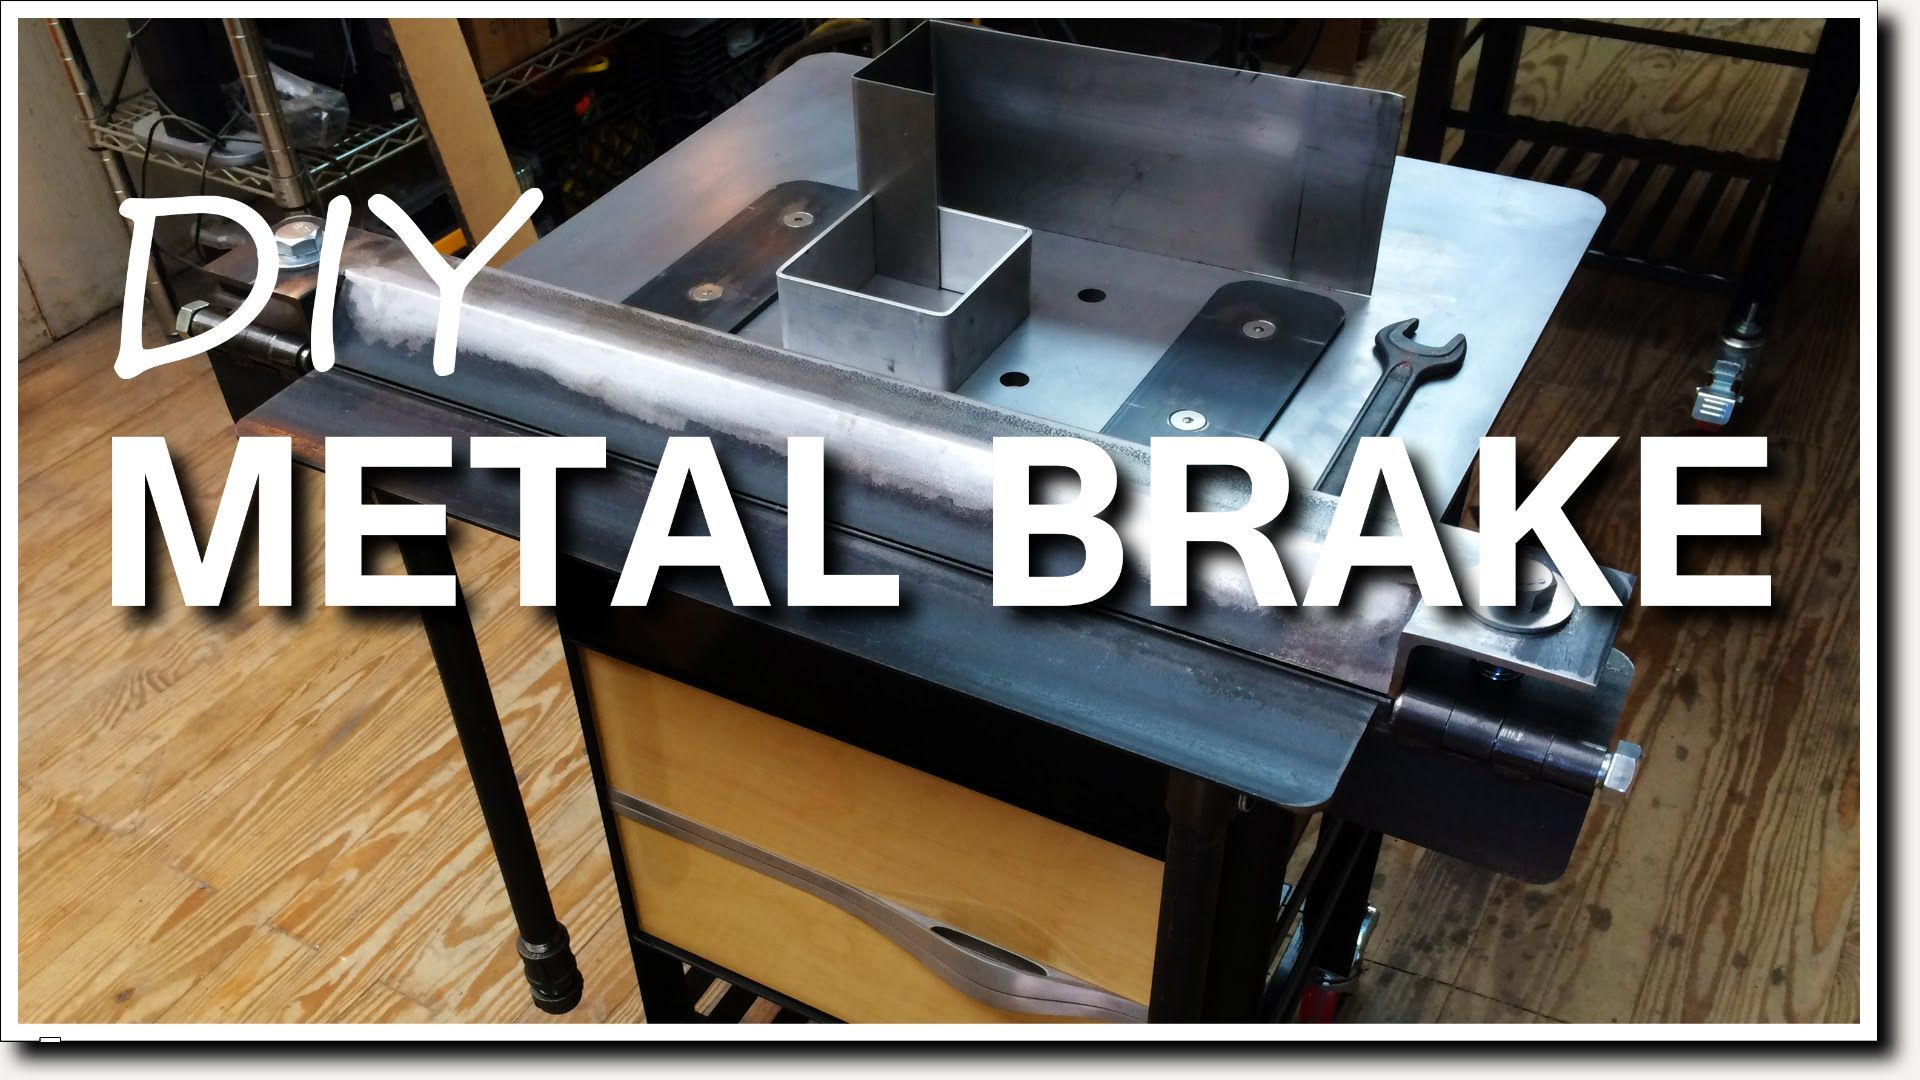 In A Previous Video I Built My Own Mobile Welding Tables For One Of The Parts I Wanted To Bend A 16 Gauge Sheet Of Metal For A Sheet Metal